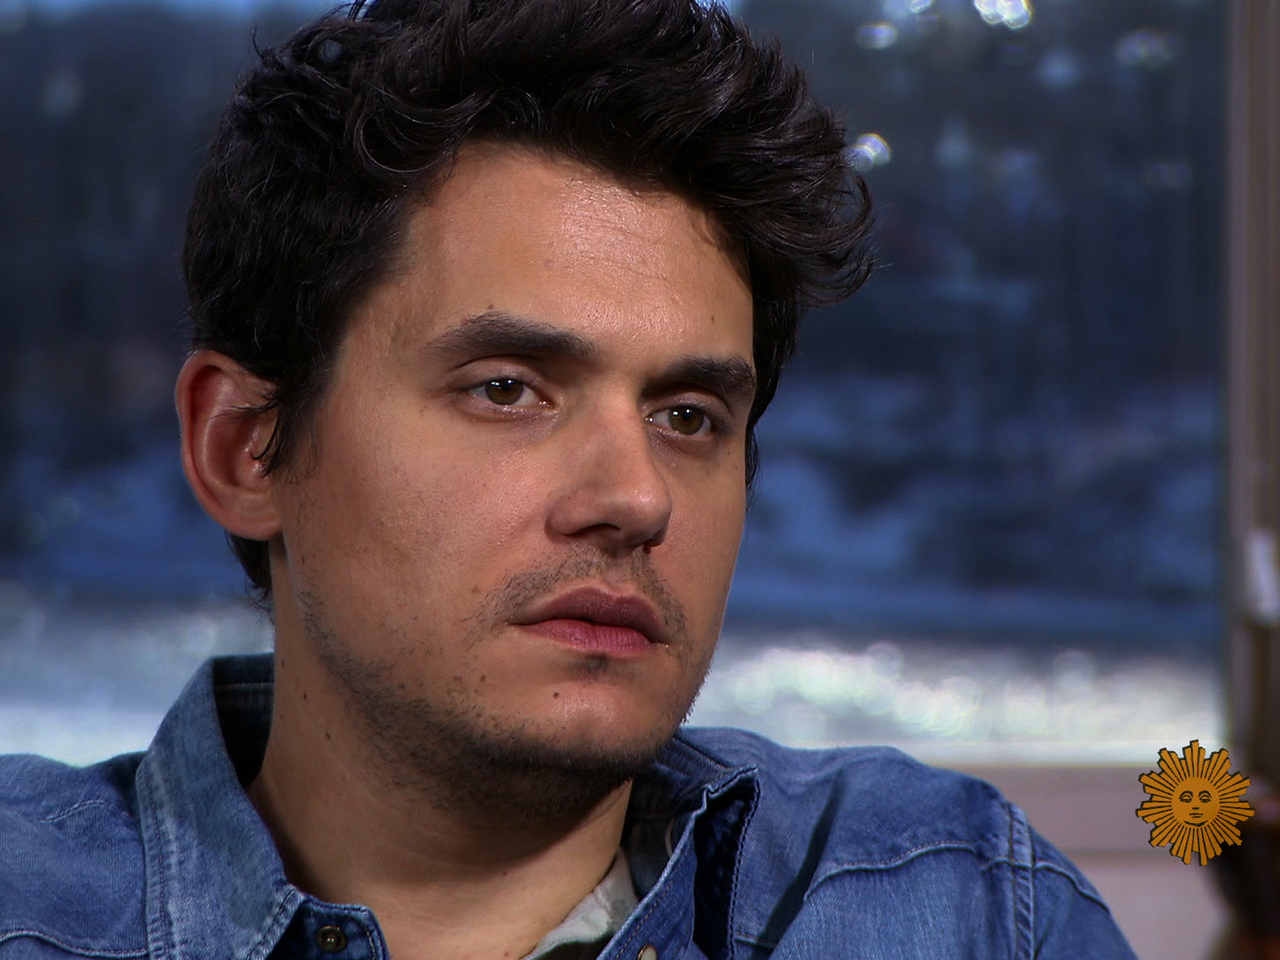 John Mayer: His Shadow Days are over - CBS News